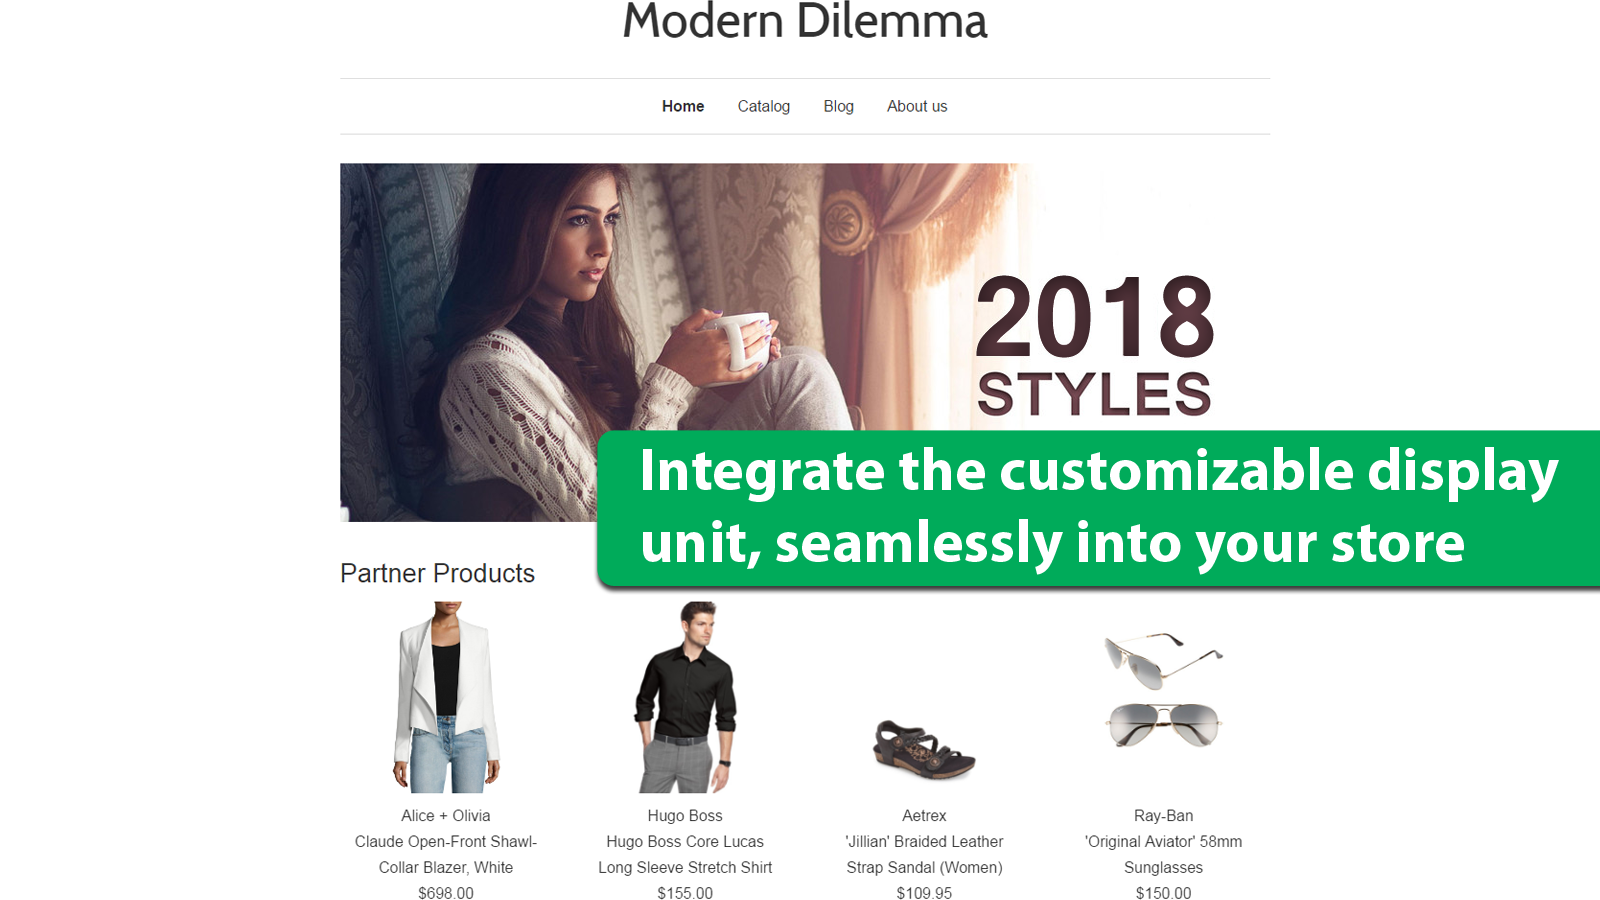 Integrate customizable display unit, seamlessly into your store